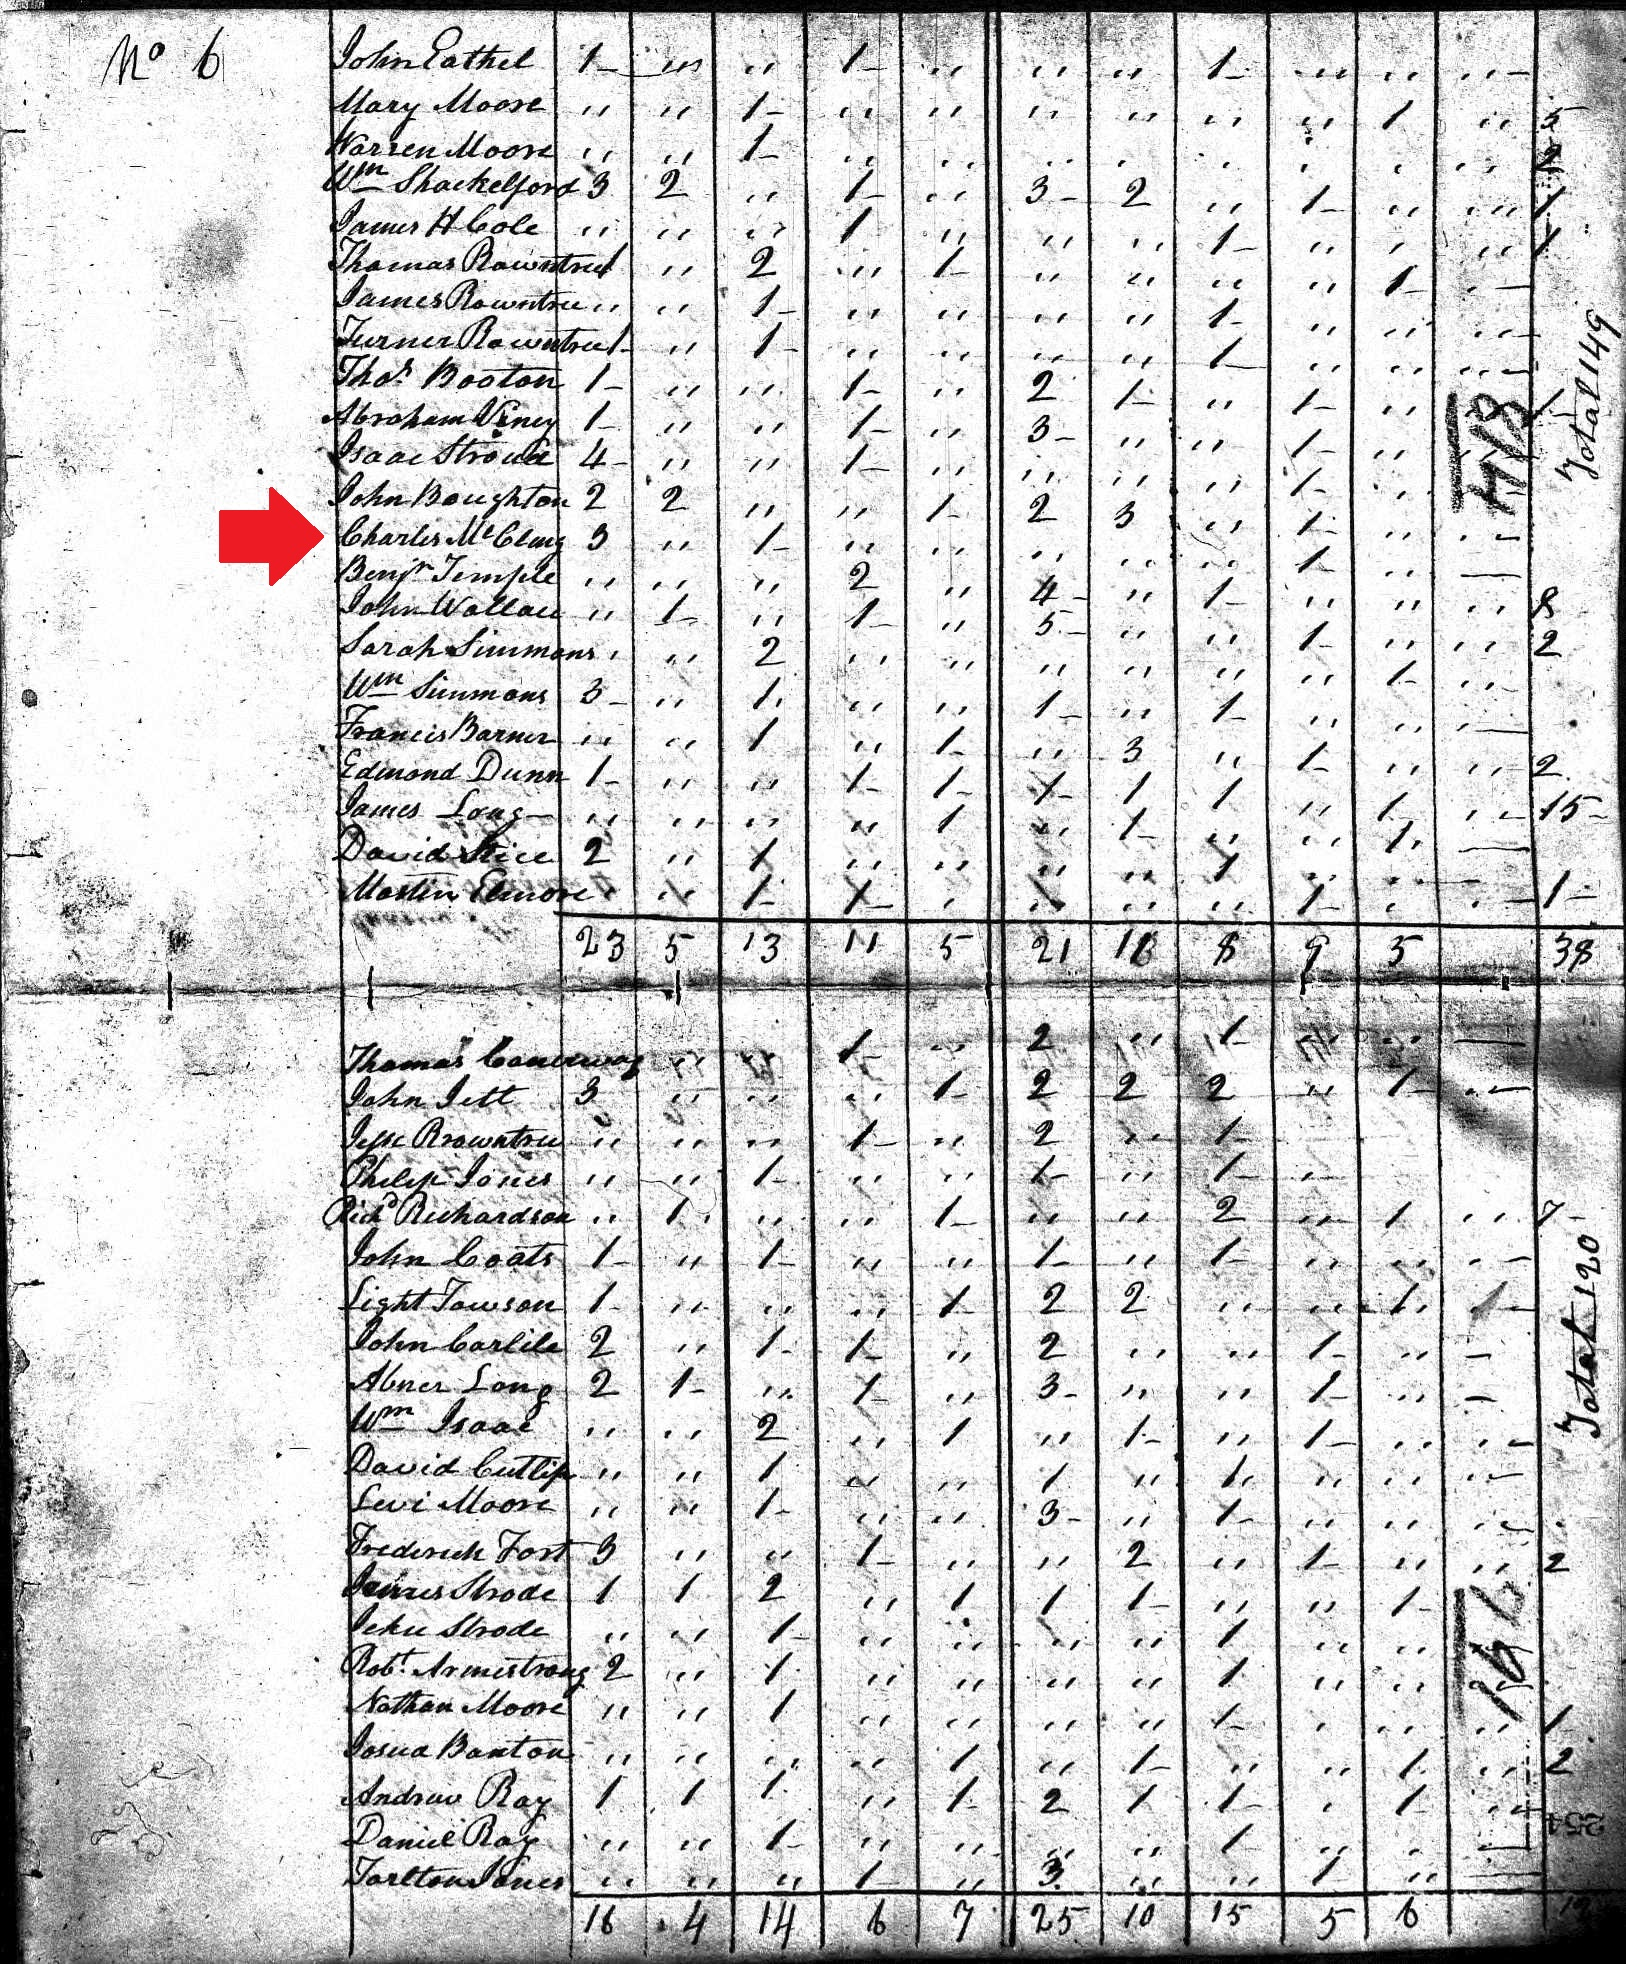 Image:Charles McClung 1820 Census Warren County KY.jpg